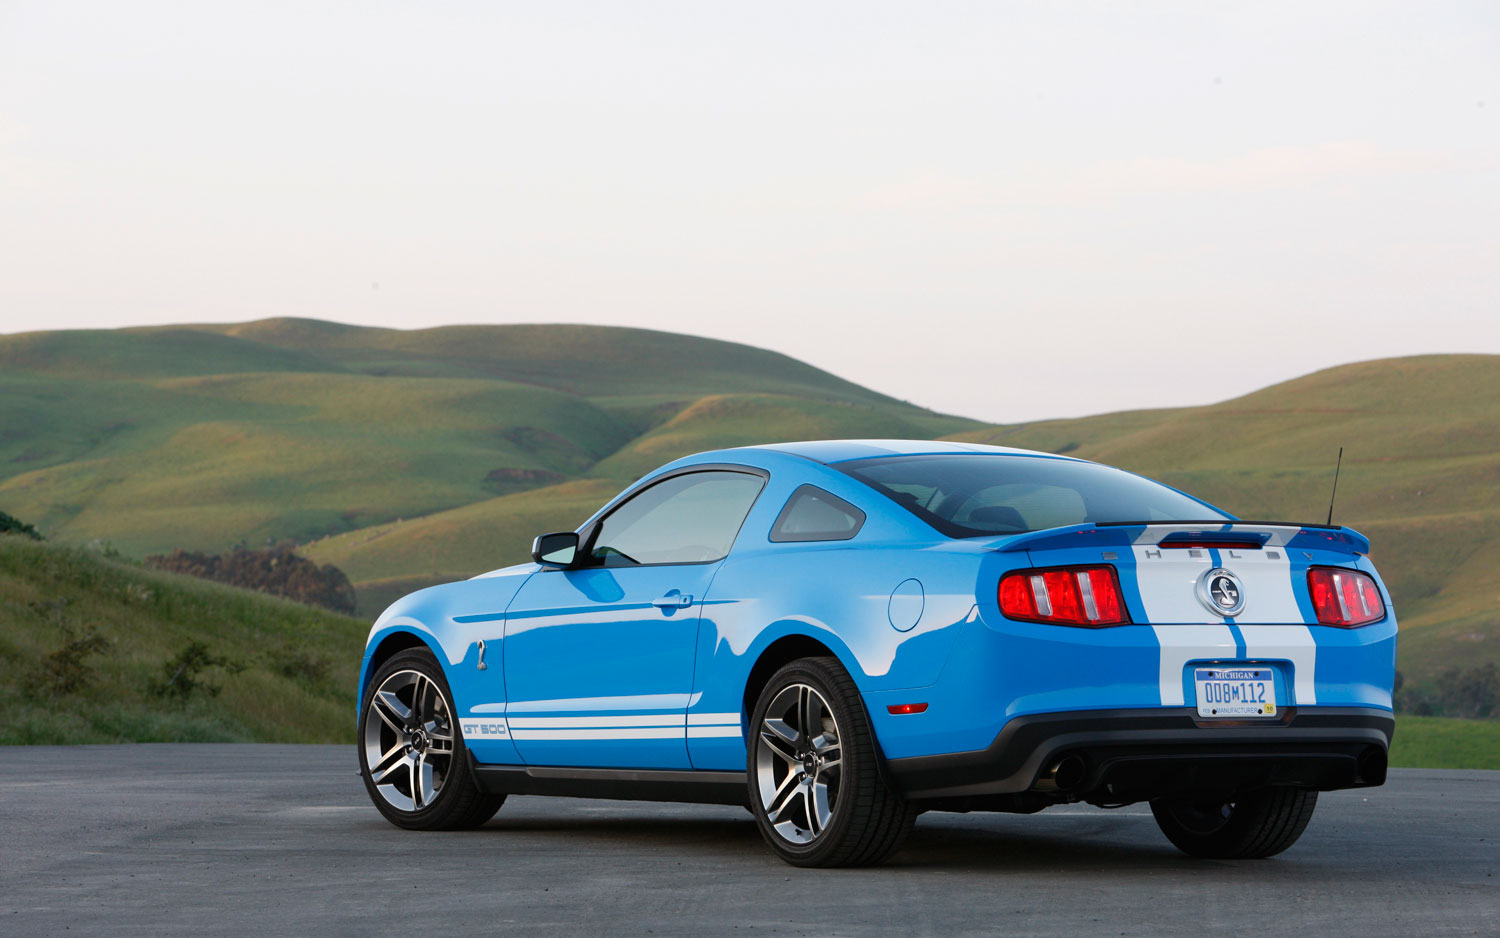 2010 Ford Shelby Gt500 #10